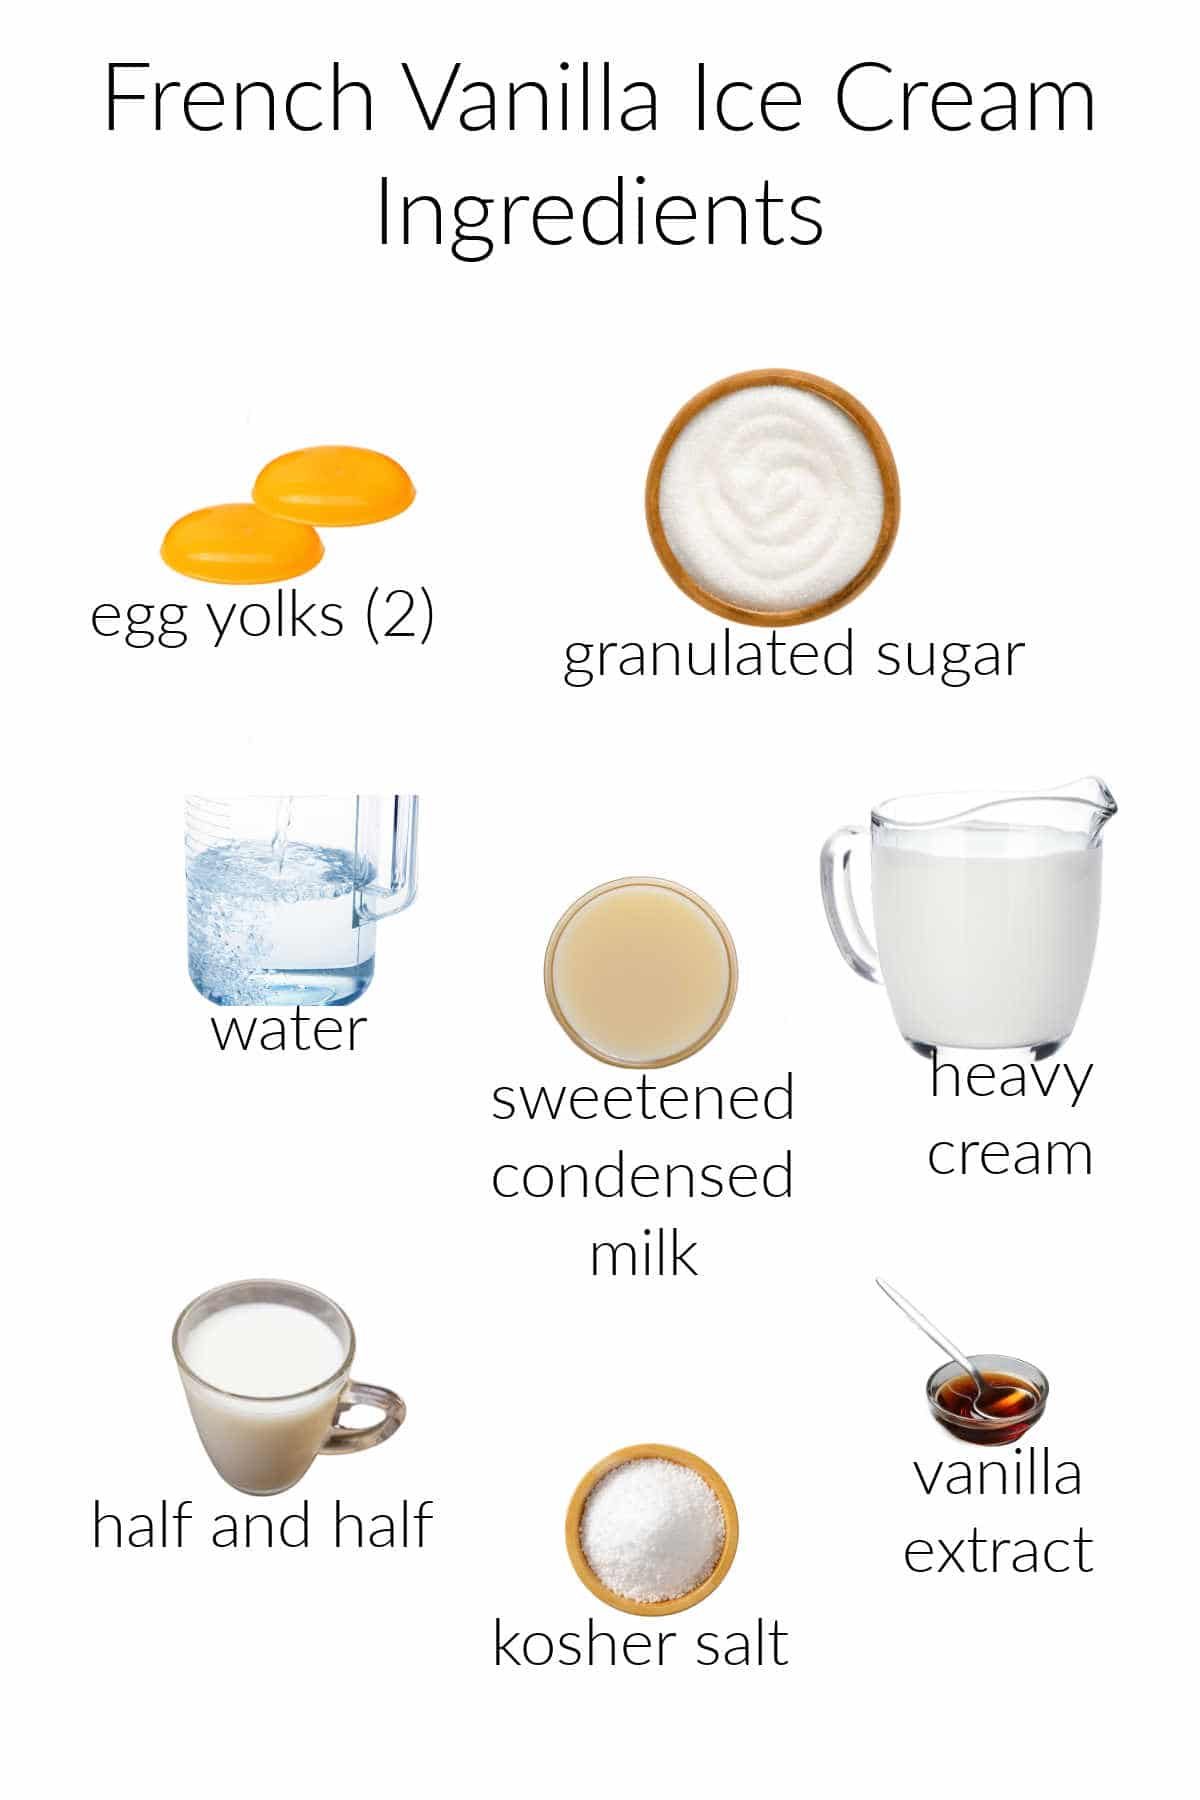 A collage of pictures of the ingredients needed for making French vanilla ice cream: egg yolks, sugar, water, sweetened condensed milk, heavy cream, half and half, salt, and vanilla.